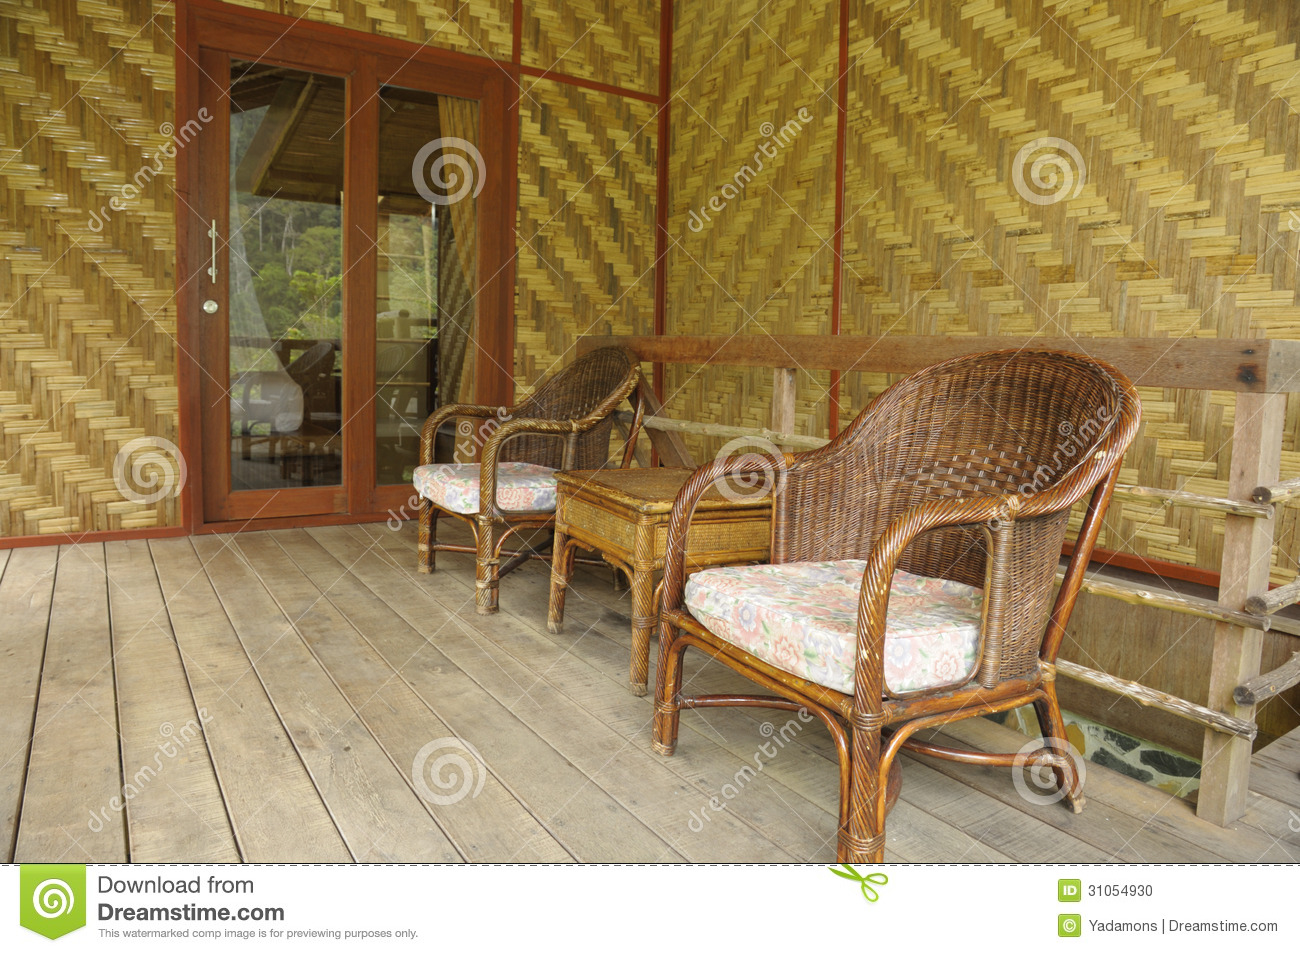 where to buy wicker chairs concrete rebar bamboo and chair living room stock photo image